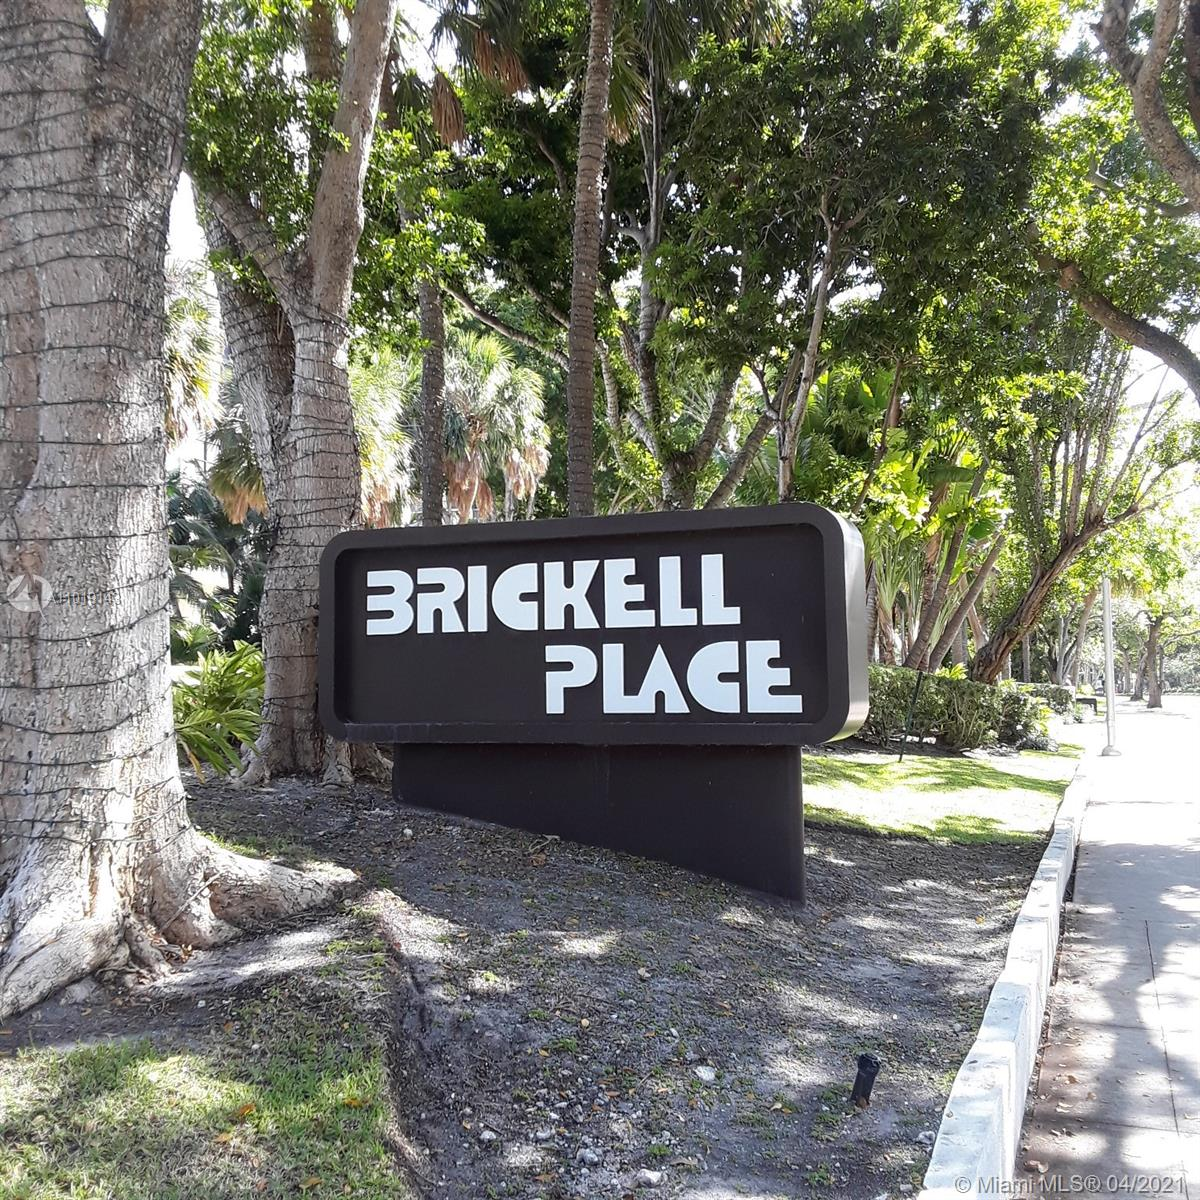 Brickell Place Tower A #A1602 - 1865 Brickell Ave #A1602, Miami, FL 33129